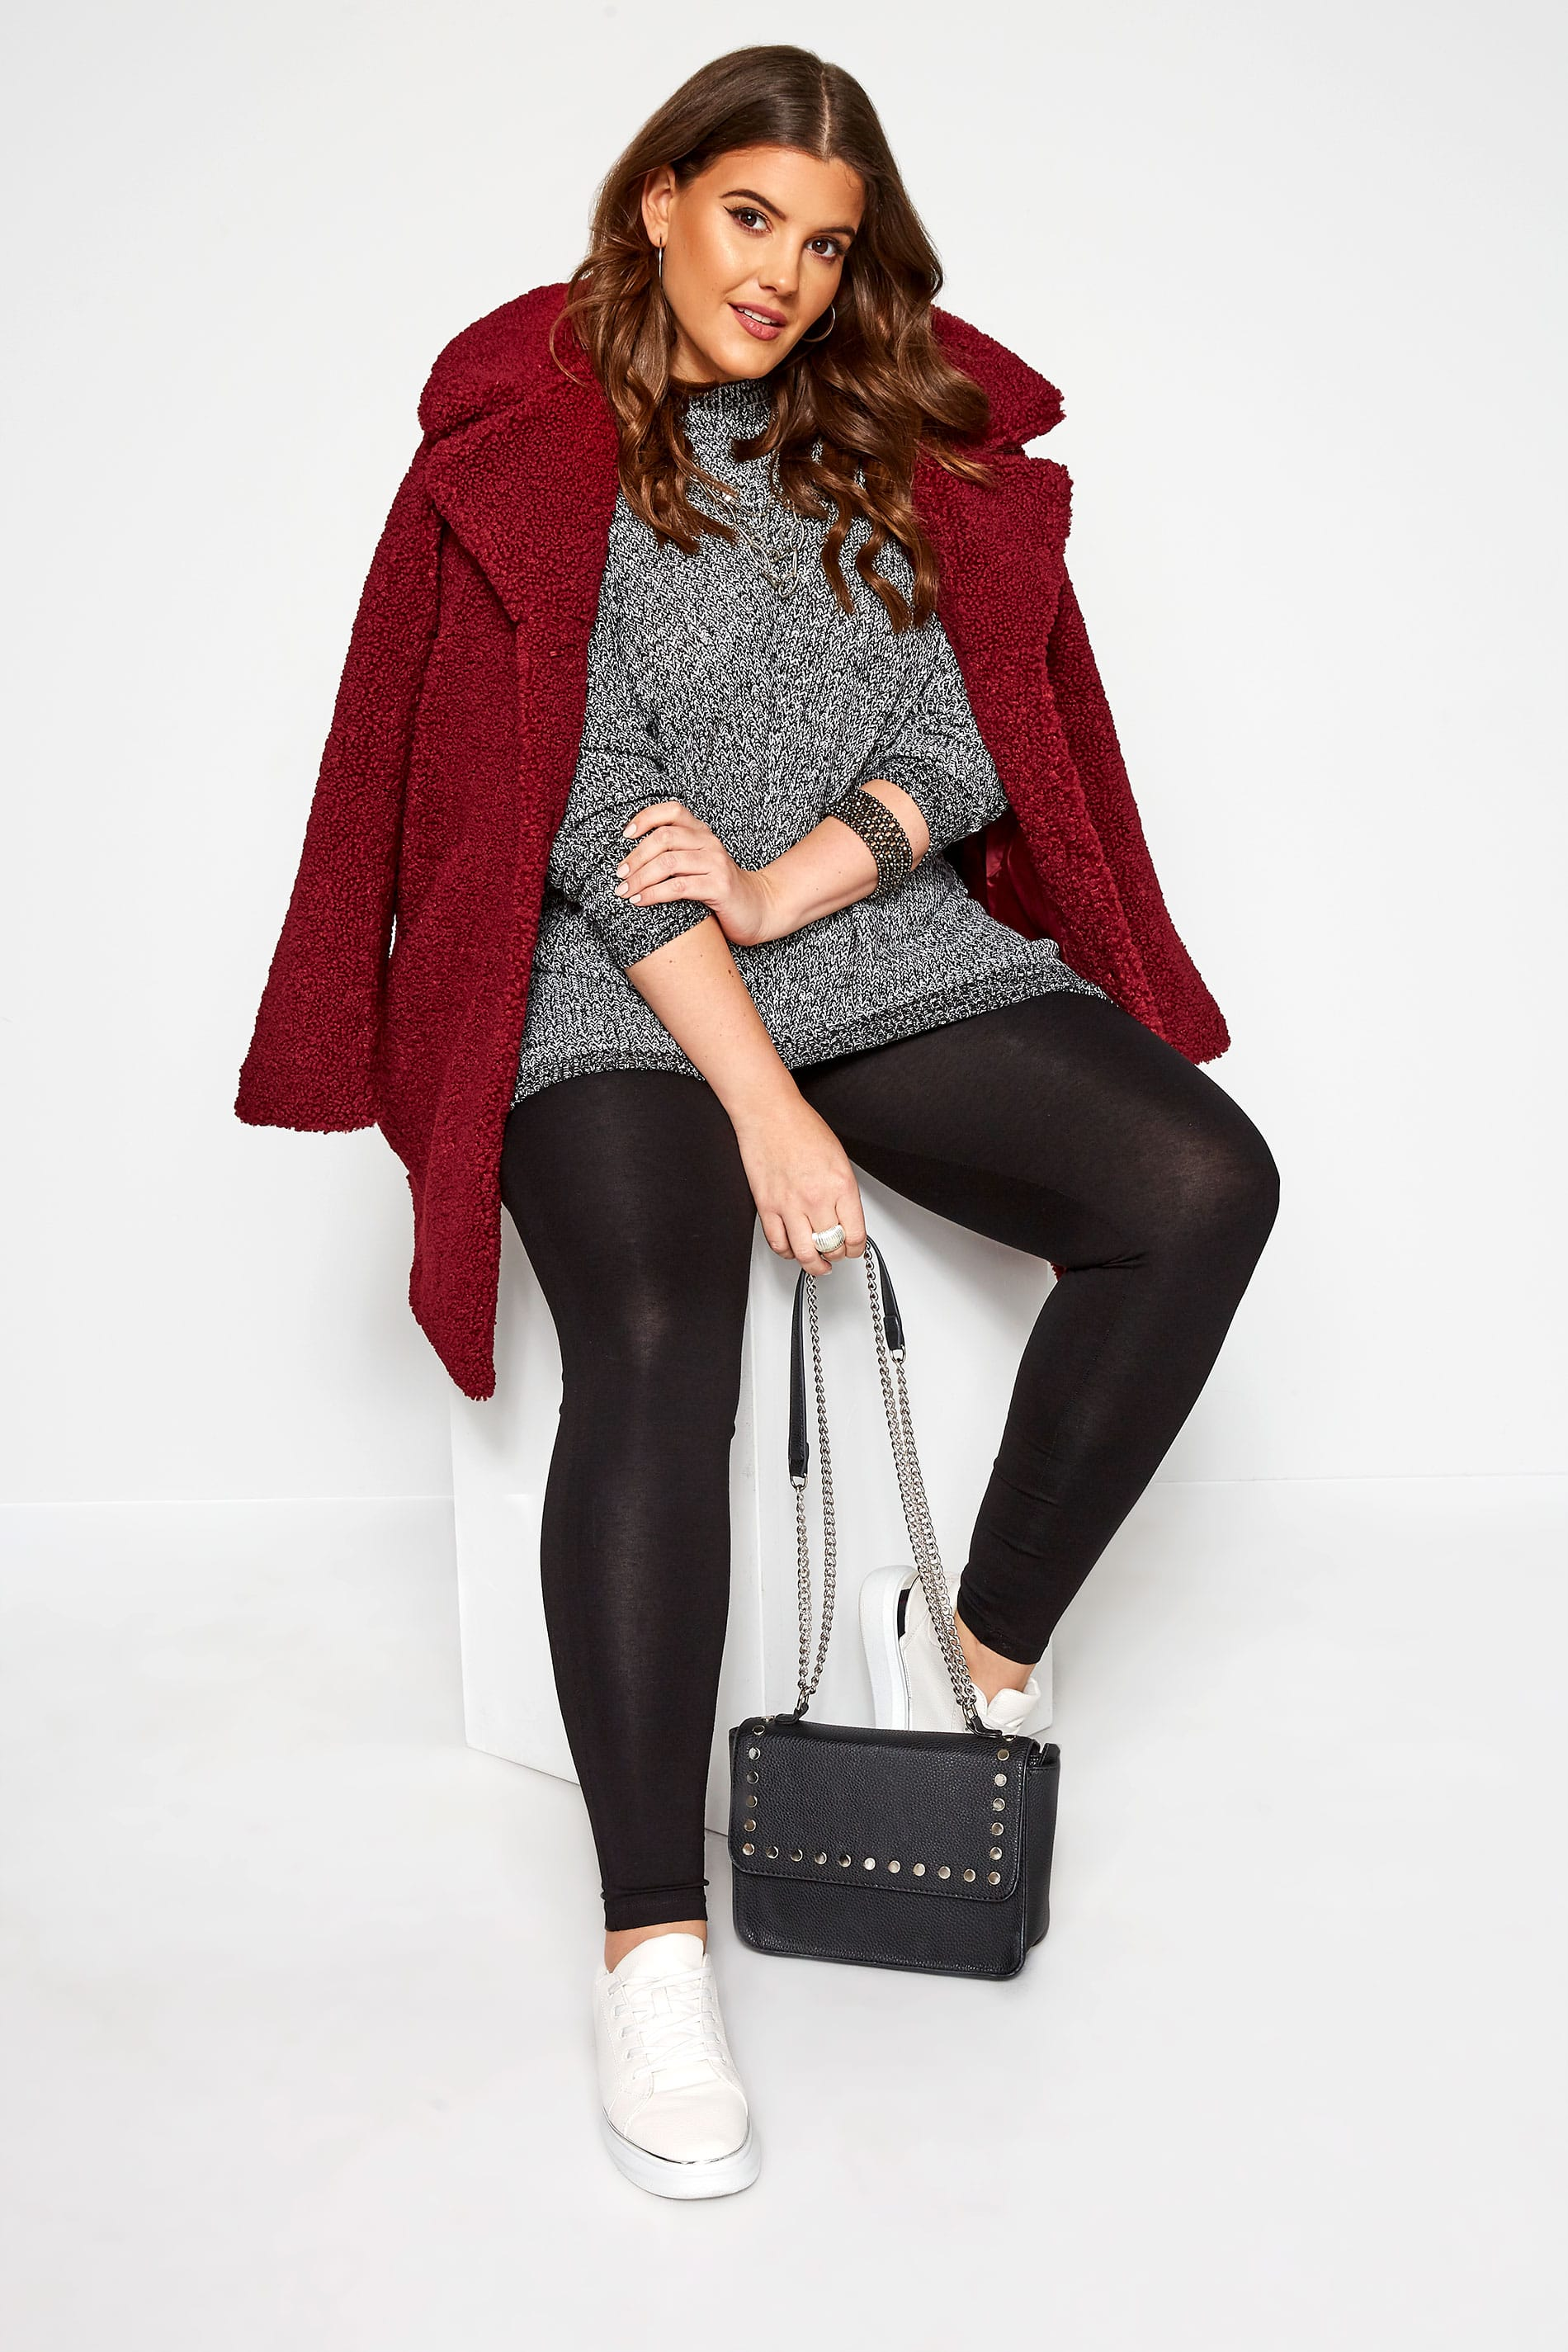 Black TUMMY CONTROL Soft Touch Cropped Leggings Plus Size